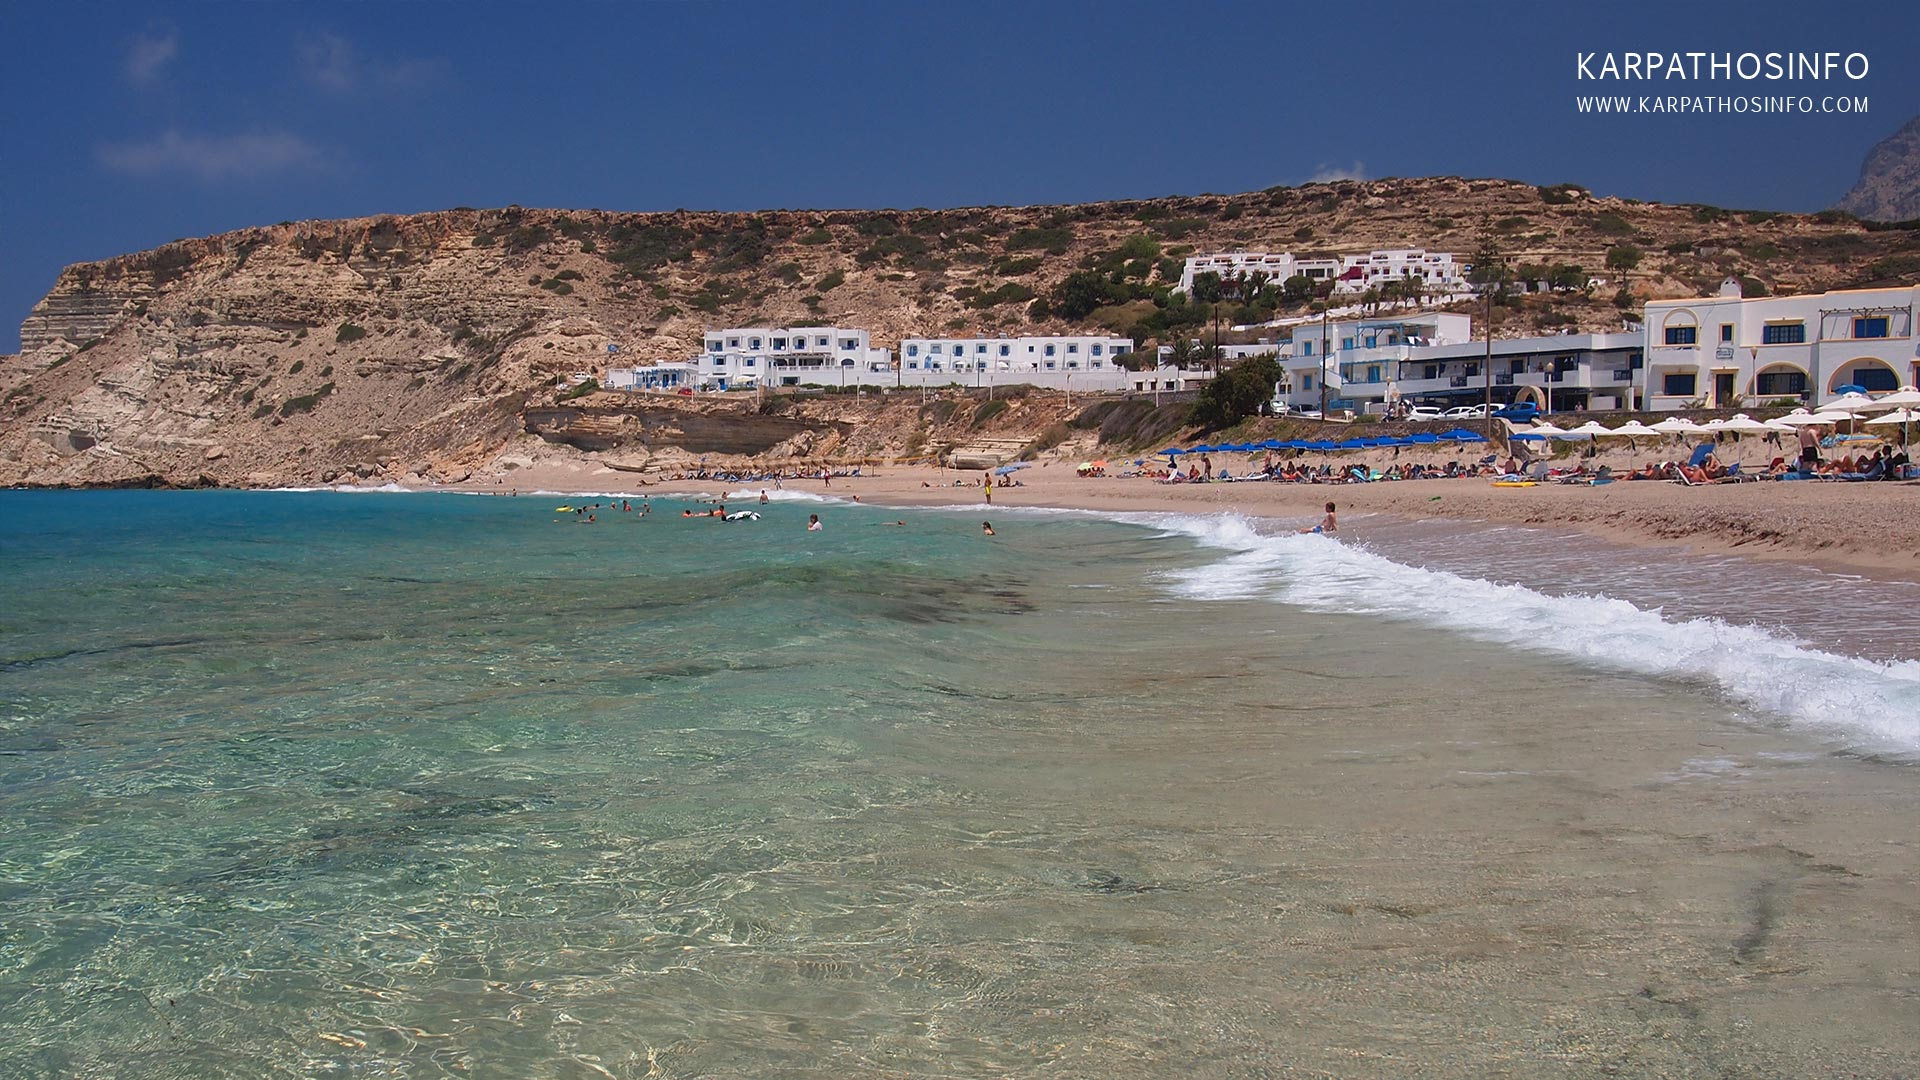 images/slider/lefkos-beach-north-cove-karpathos.jpg